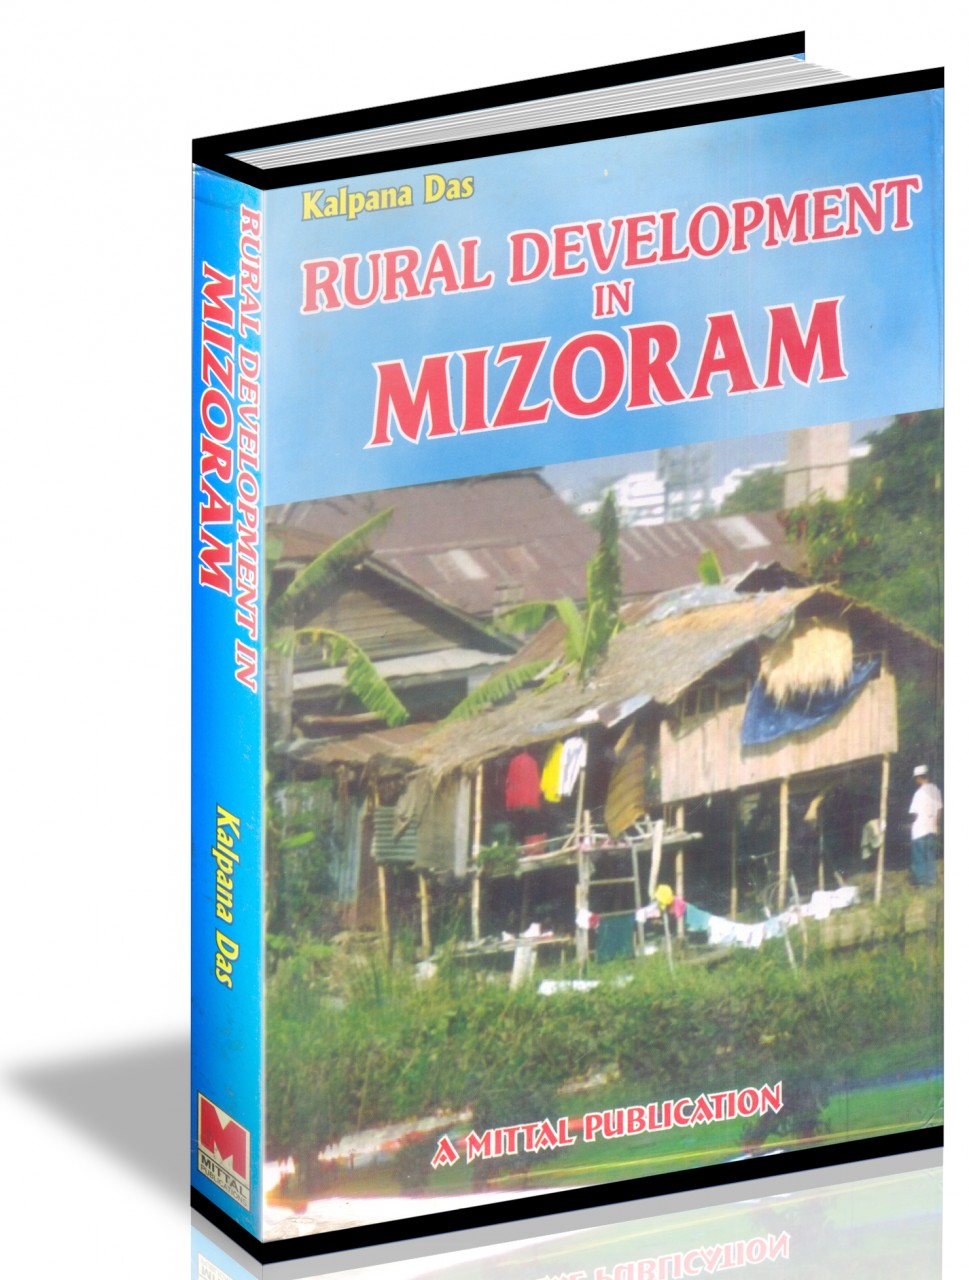 Rural Development in Mizoram